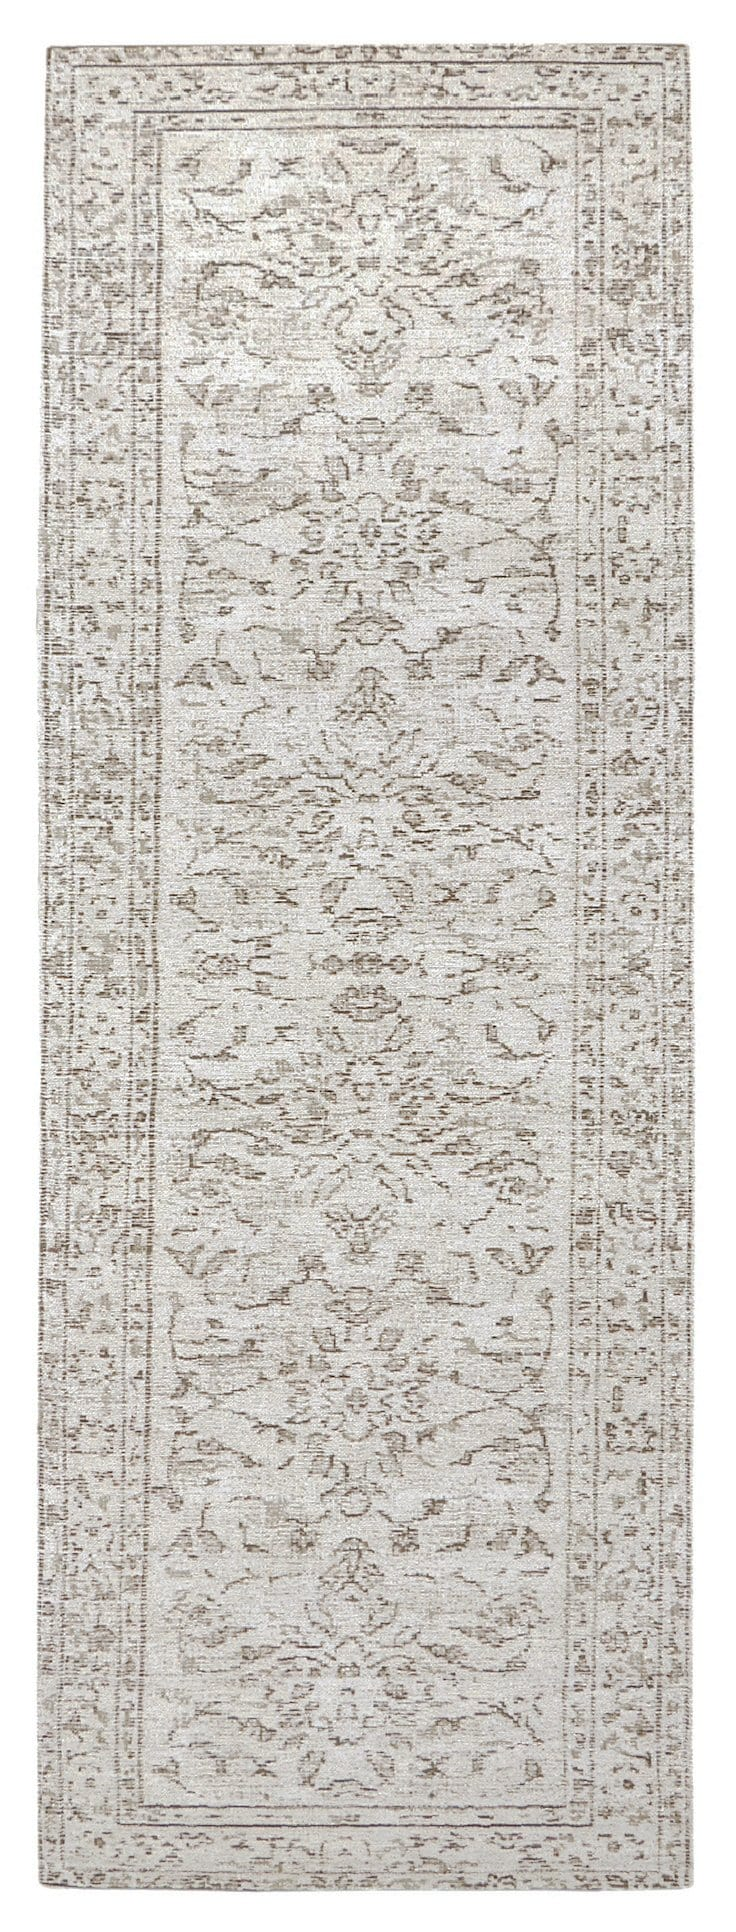 Sonia Ivory and Grey Floral Pattern Runner Rug